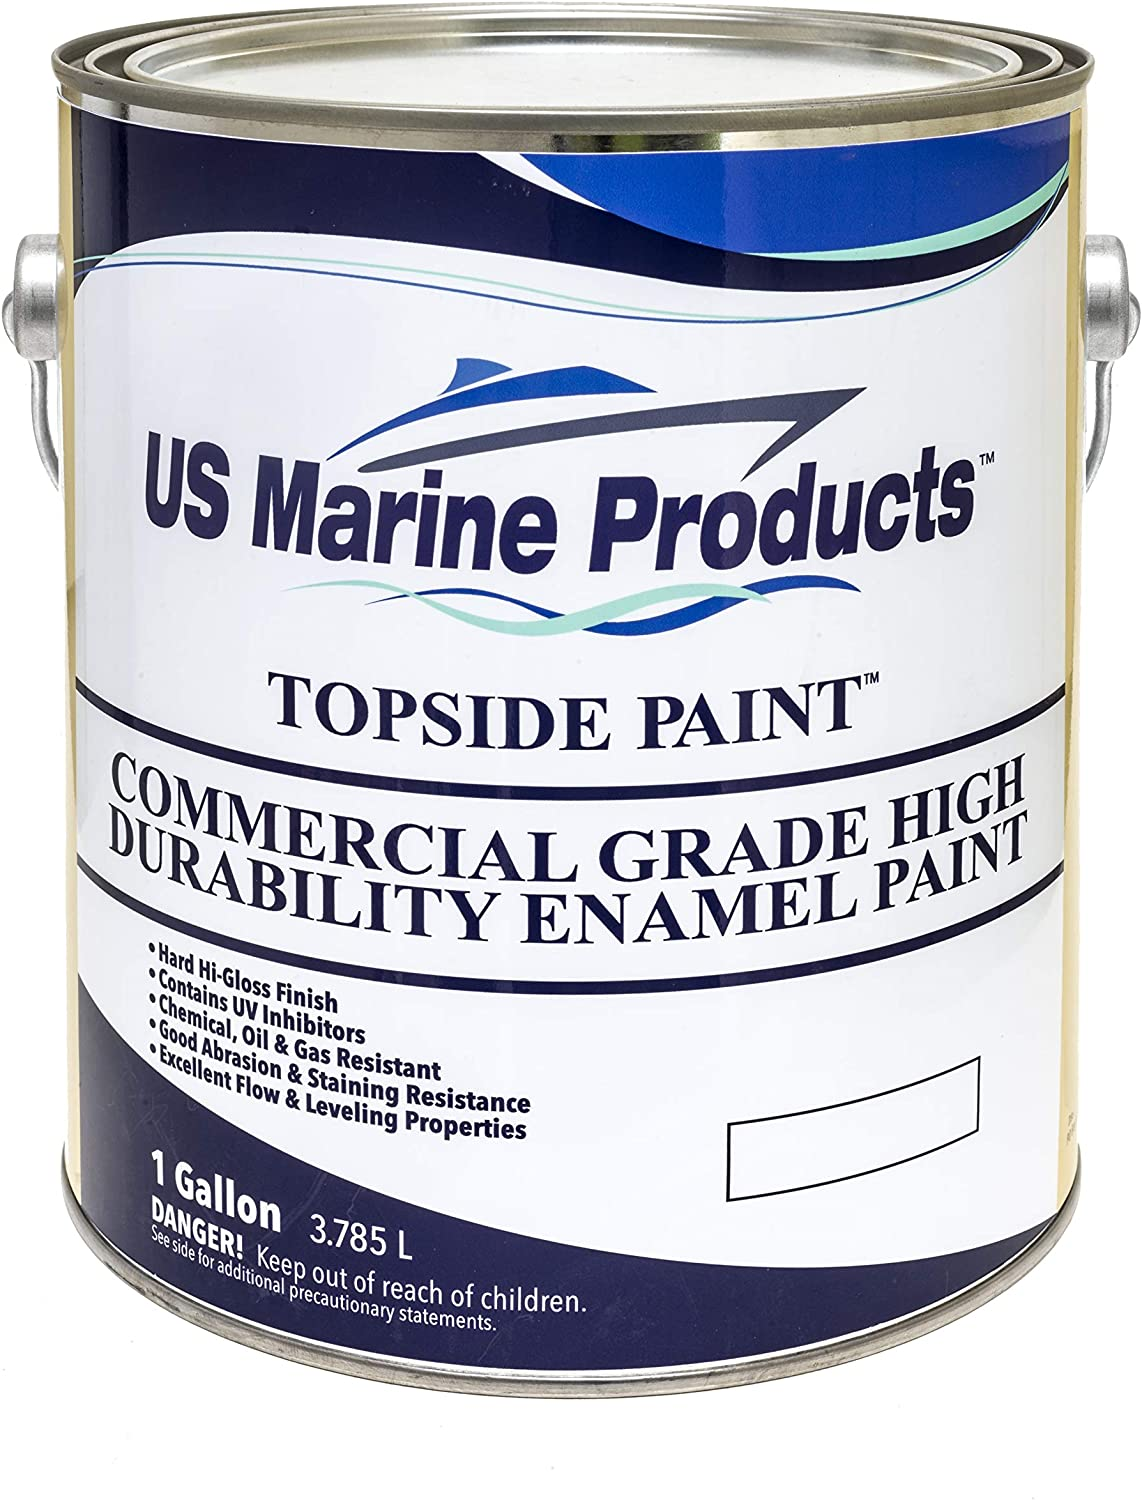 US Marine Products LLC Commercial Paint Internatio Grade Limited Popular products time trial price Topside